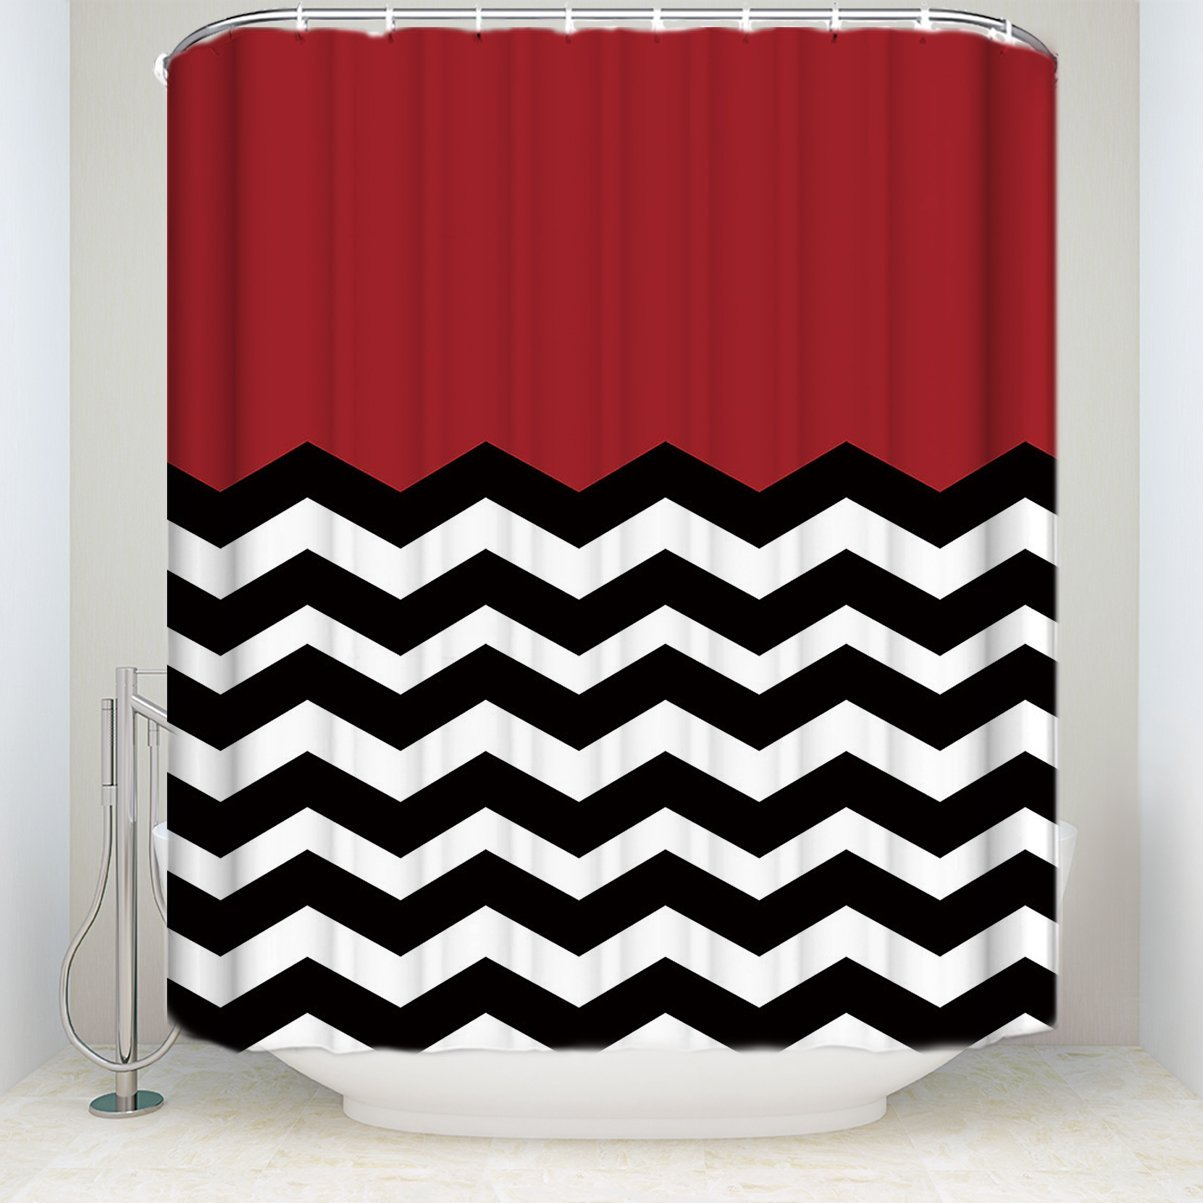 Us 17 34 35 Off Chevron Waterproof Polyester Fabric Shower Curtain Red White Black Striped Mold Resistant Shower Curtains In Shower Curtains From